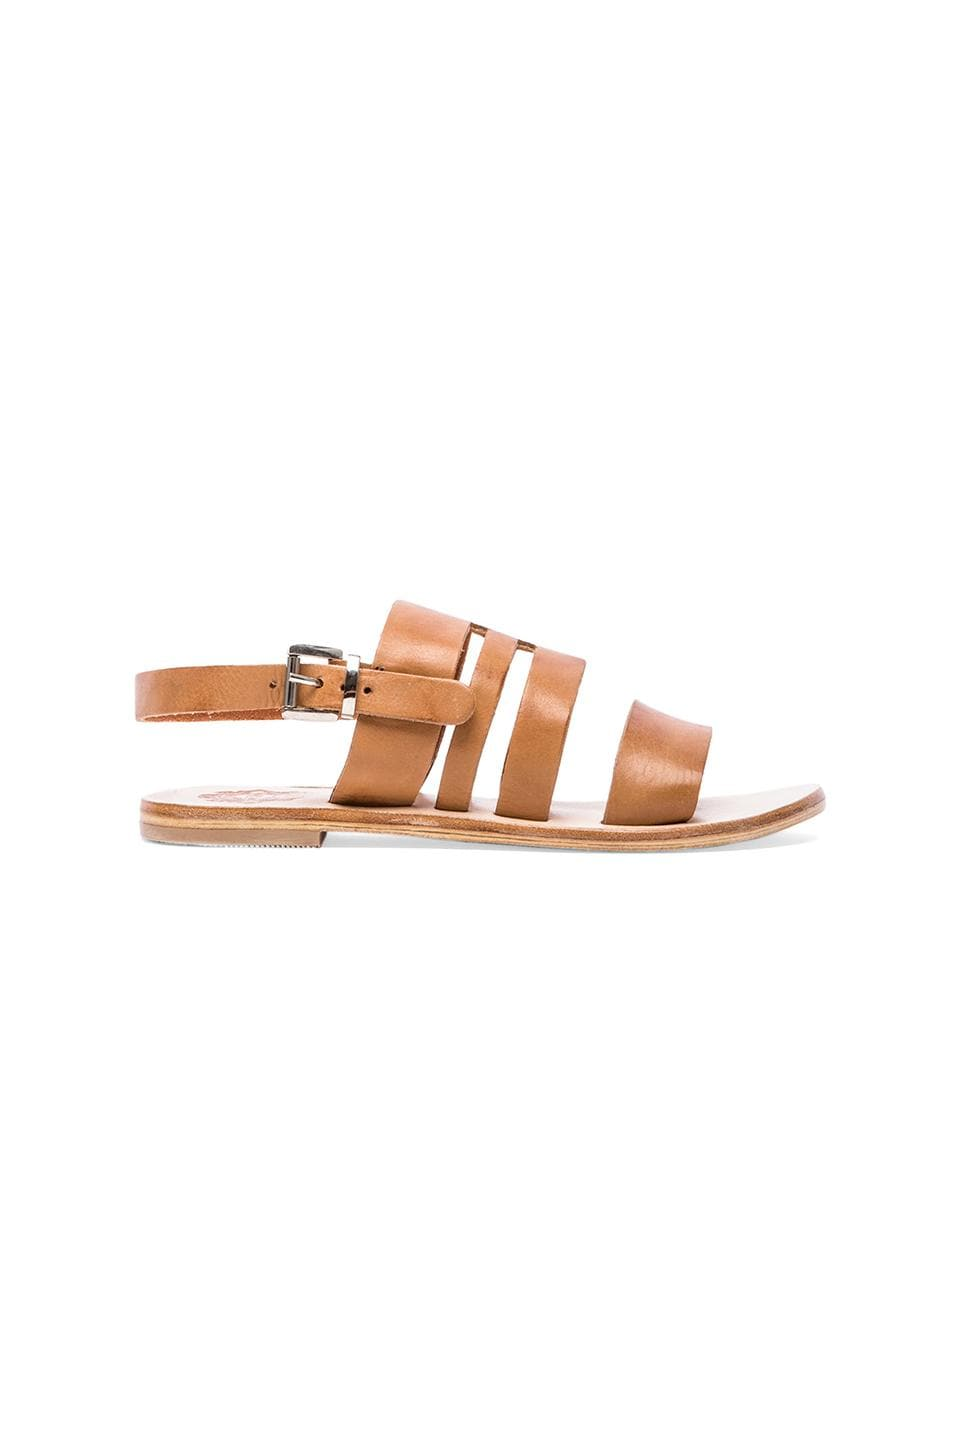 Sol Sana Phenoix Sandal in Tan